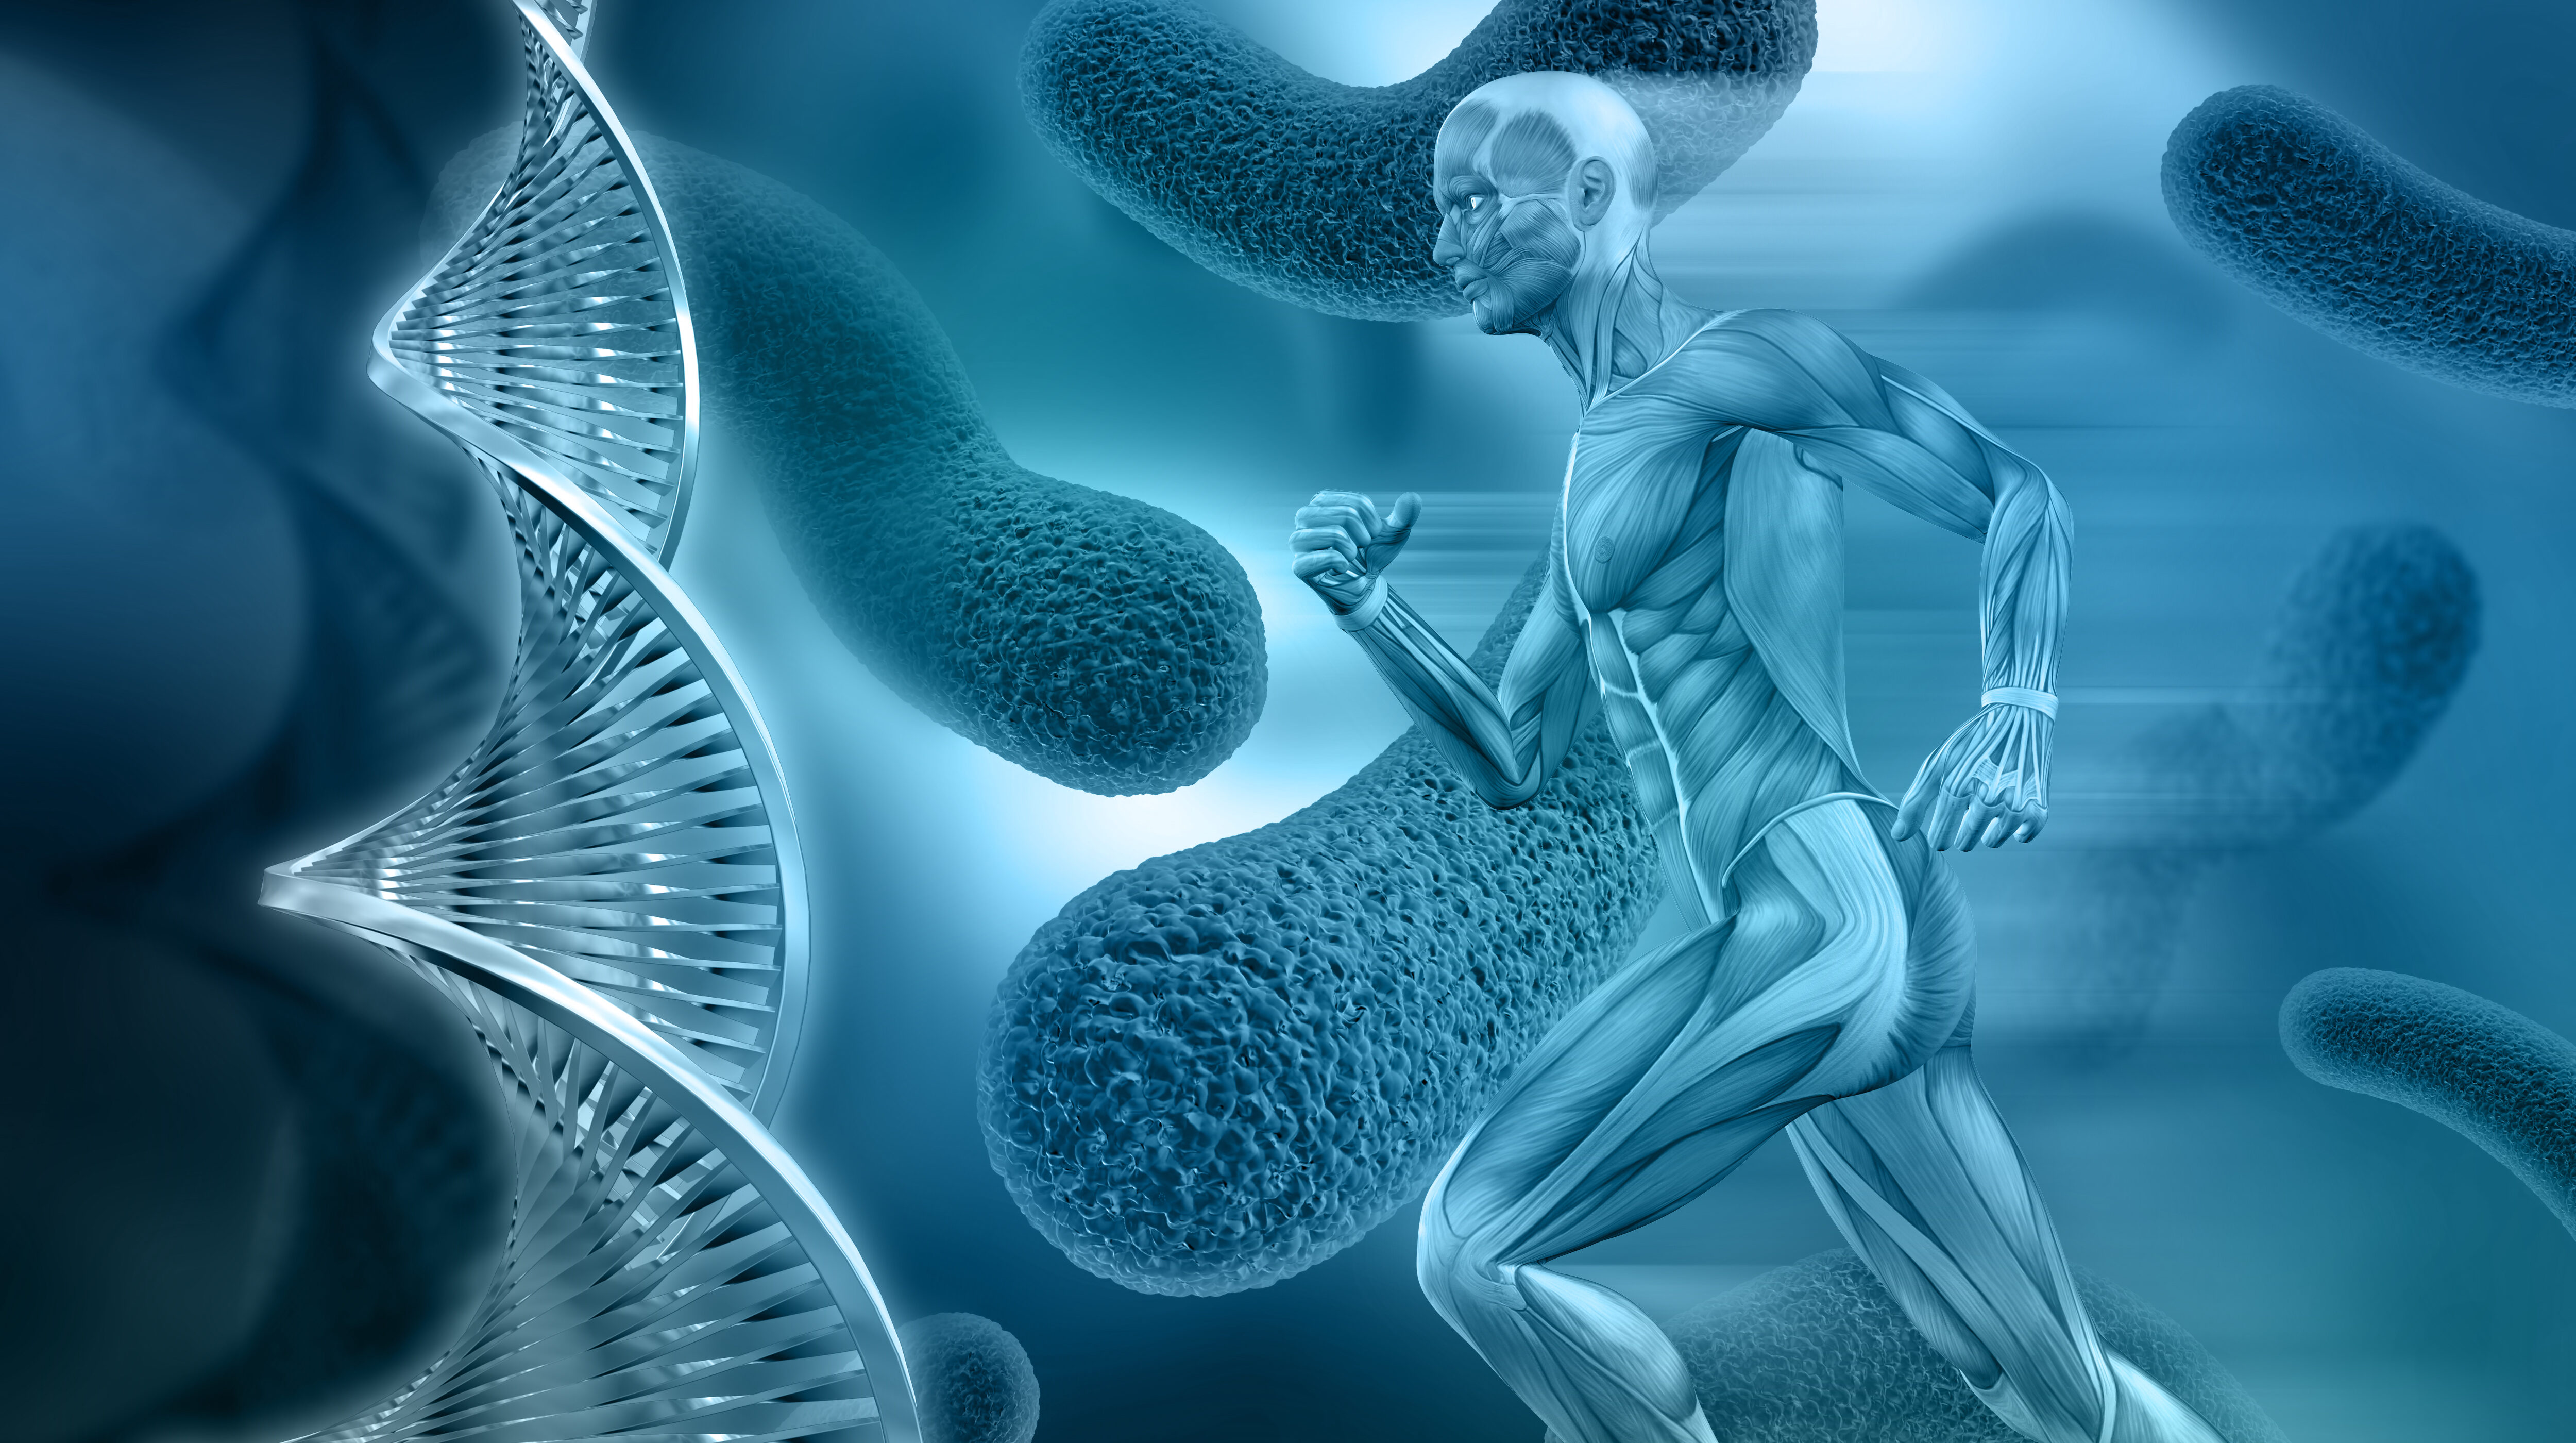 3D male medical figure with muscle map on an abstract virus background with DNA strands